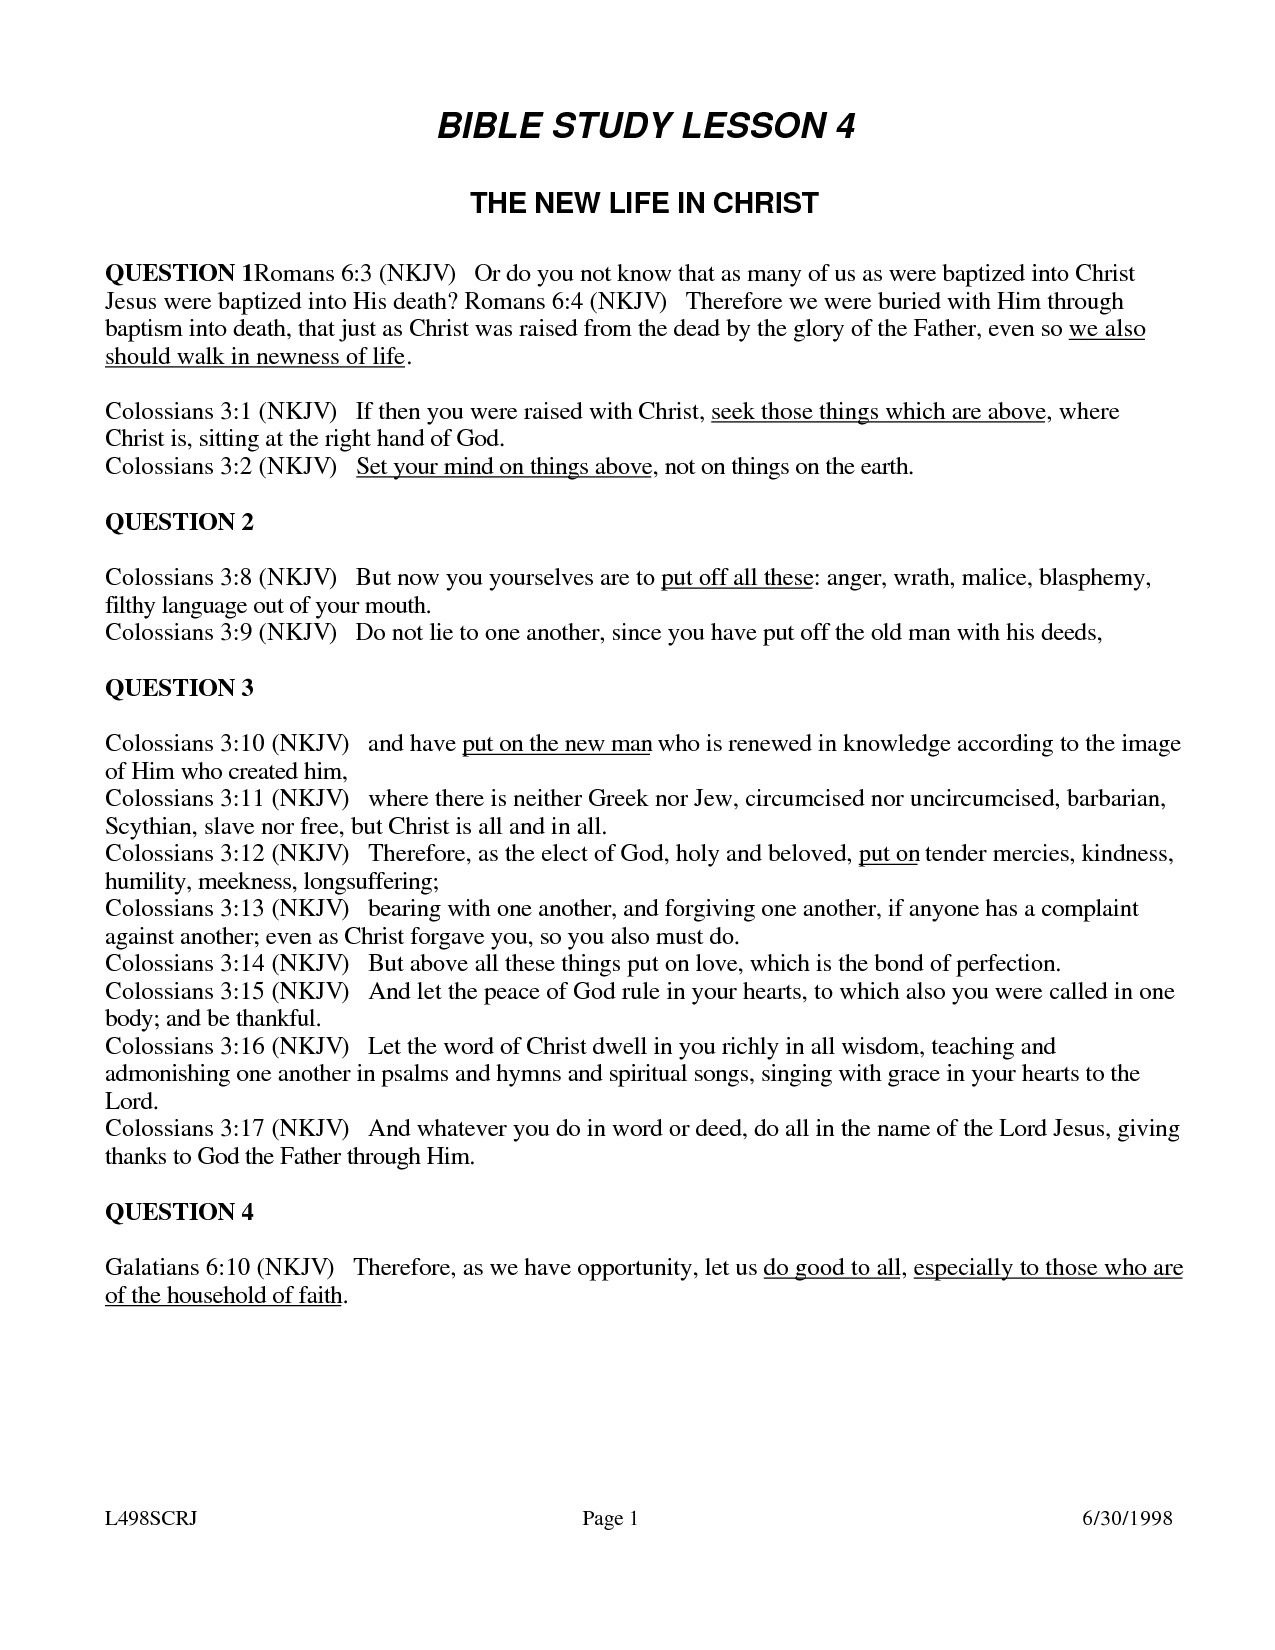 Weekly Bible Study Lesson - Printable Women's Bible Study Lessons Free